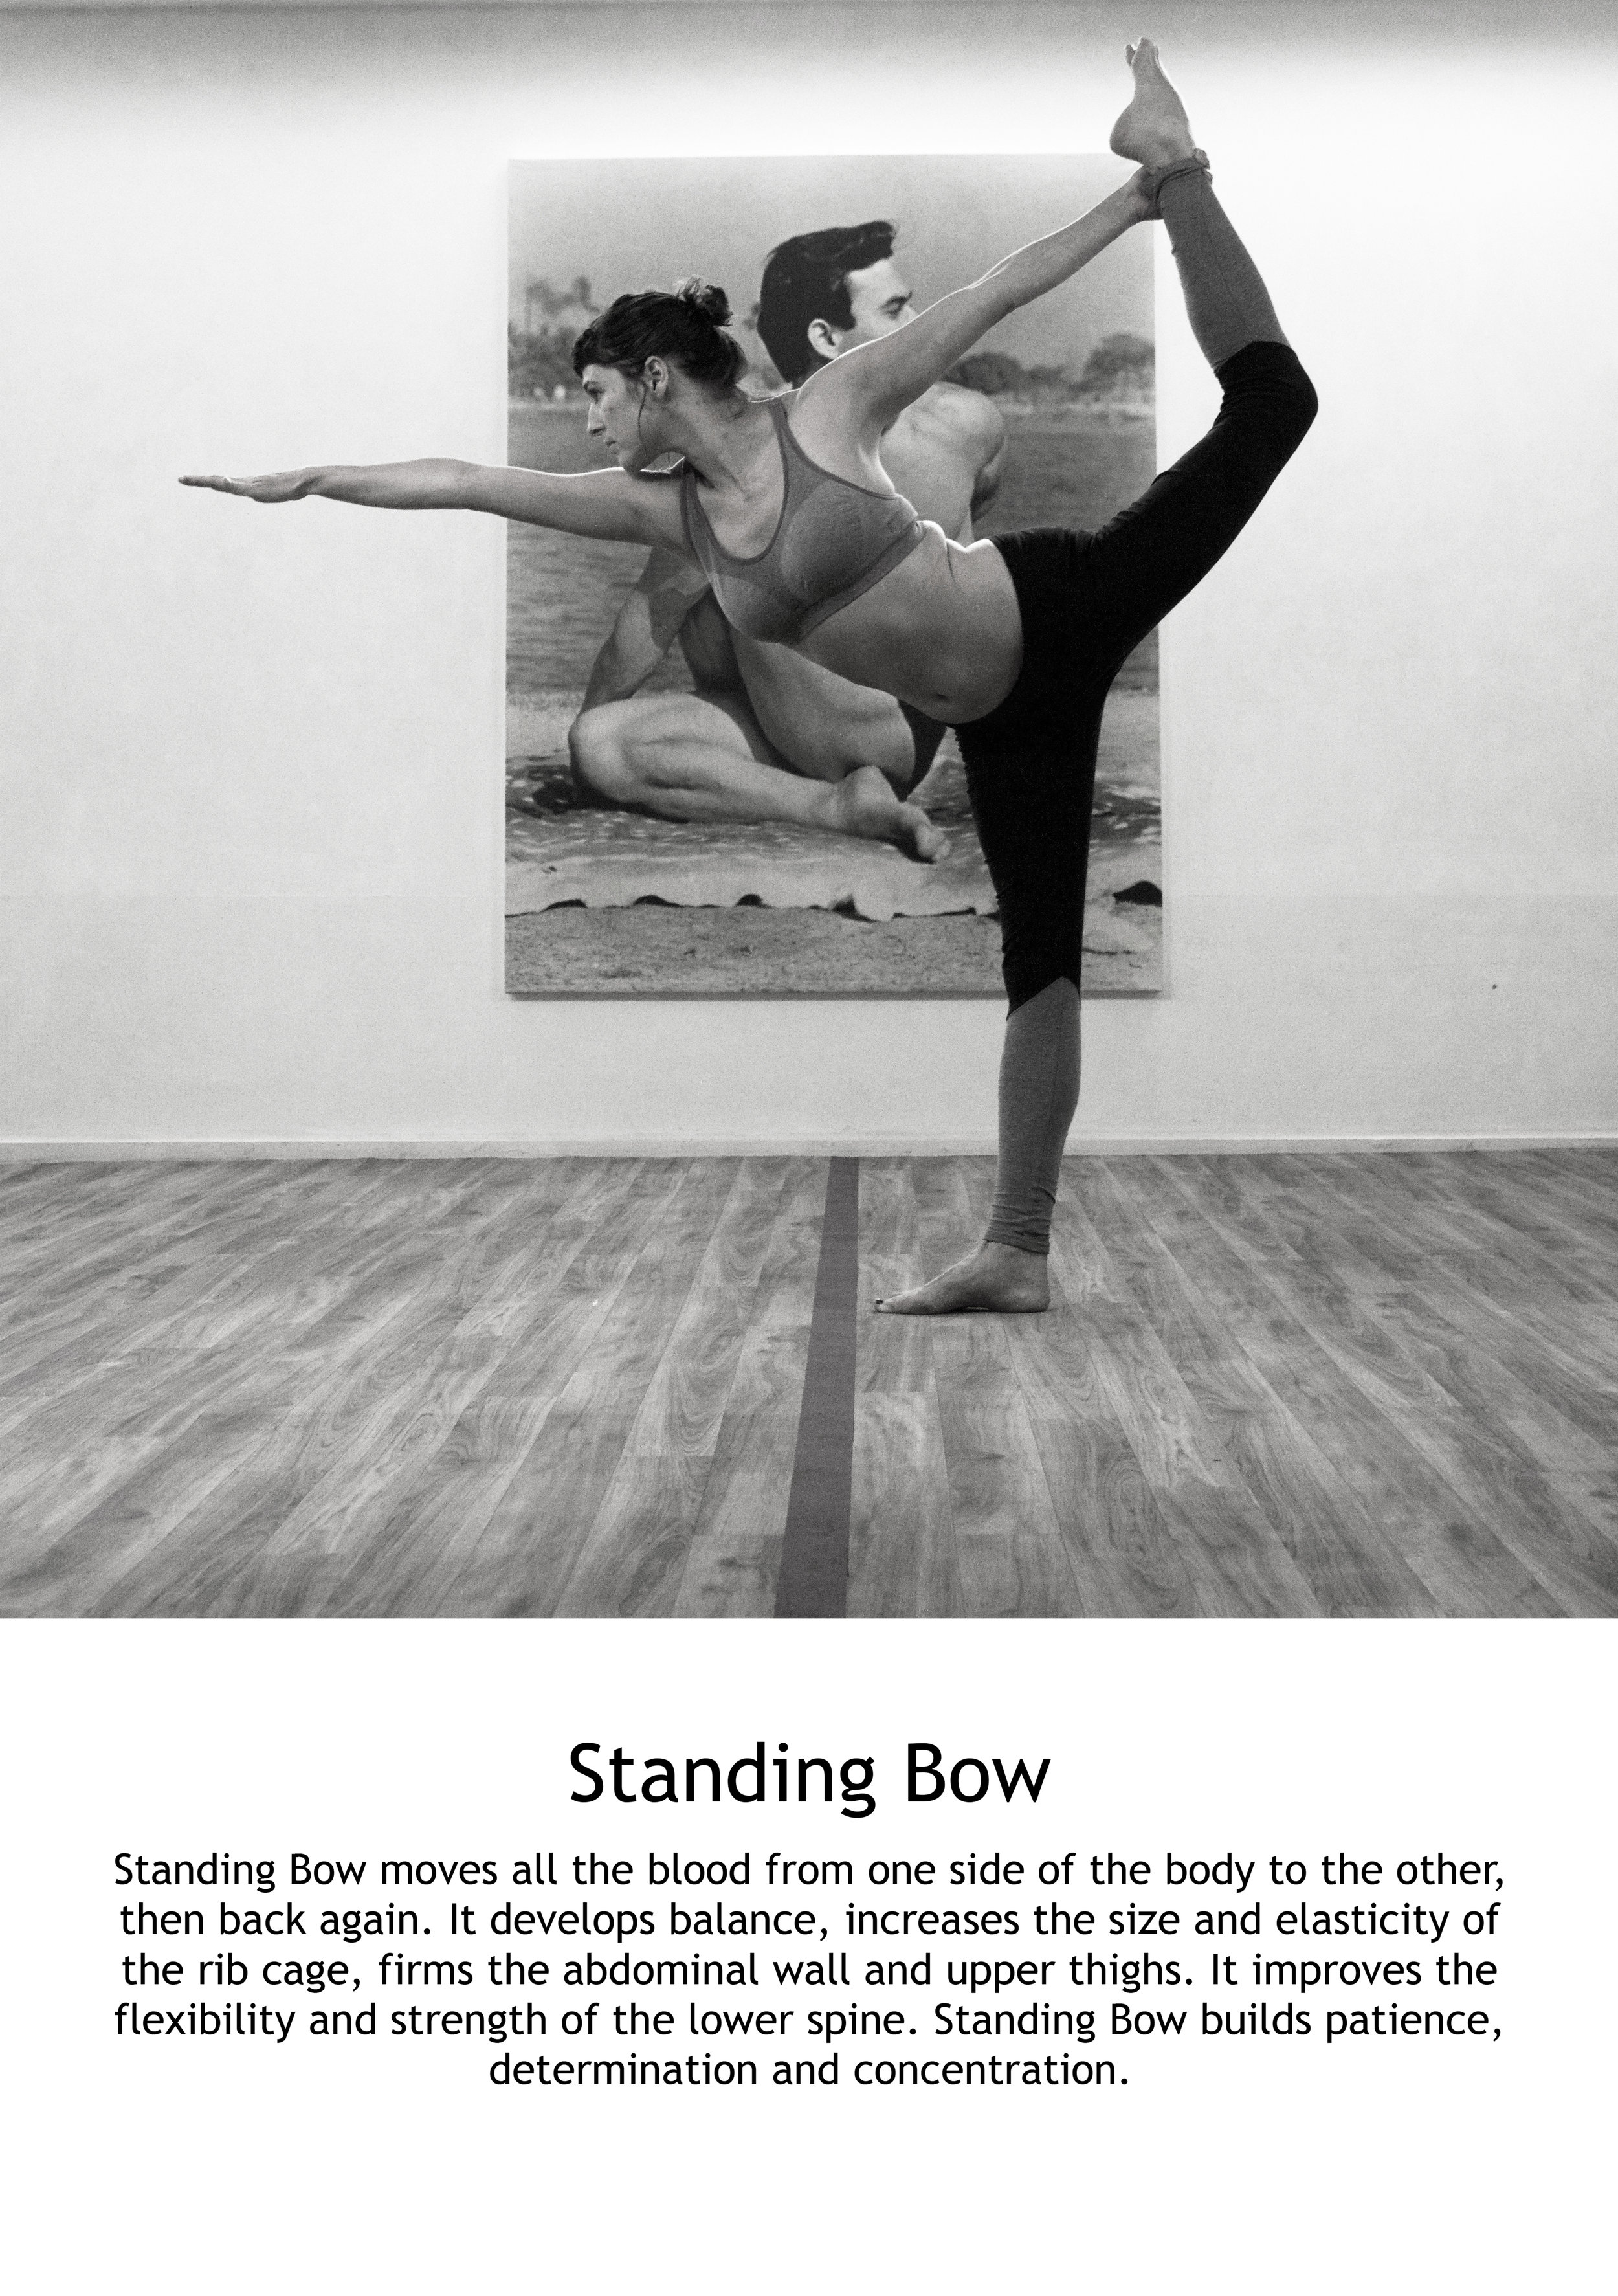 Standing Bow